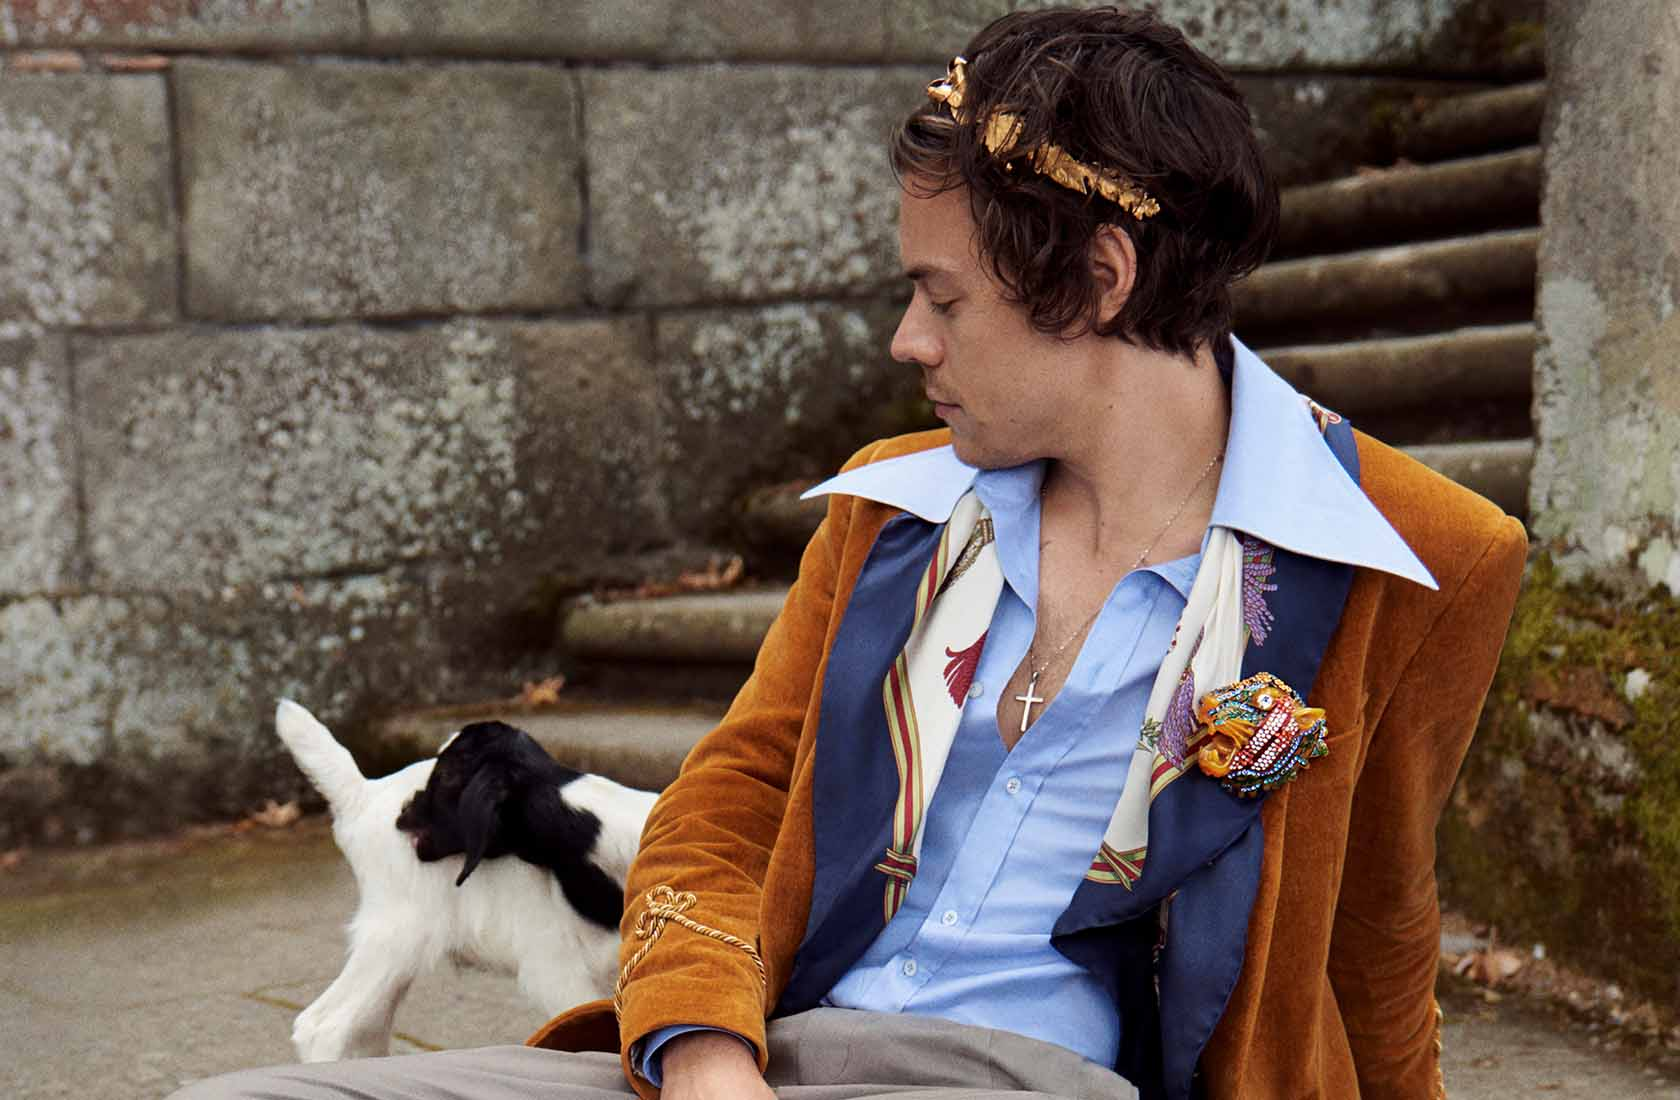 Gucci Harry Styles